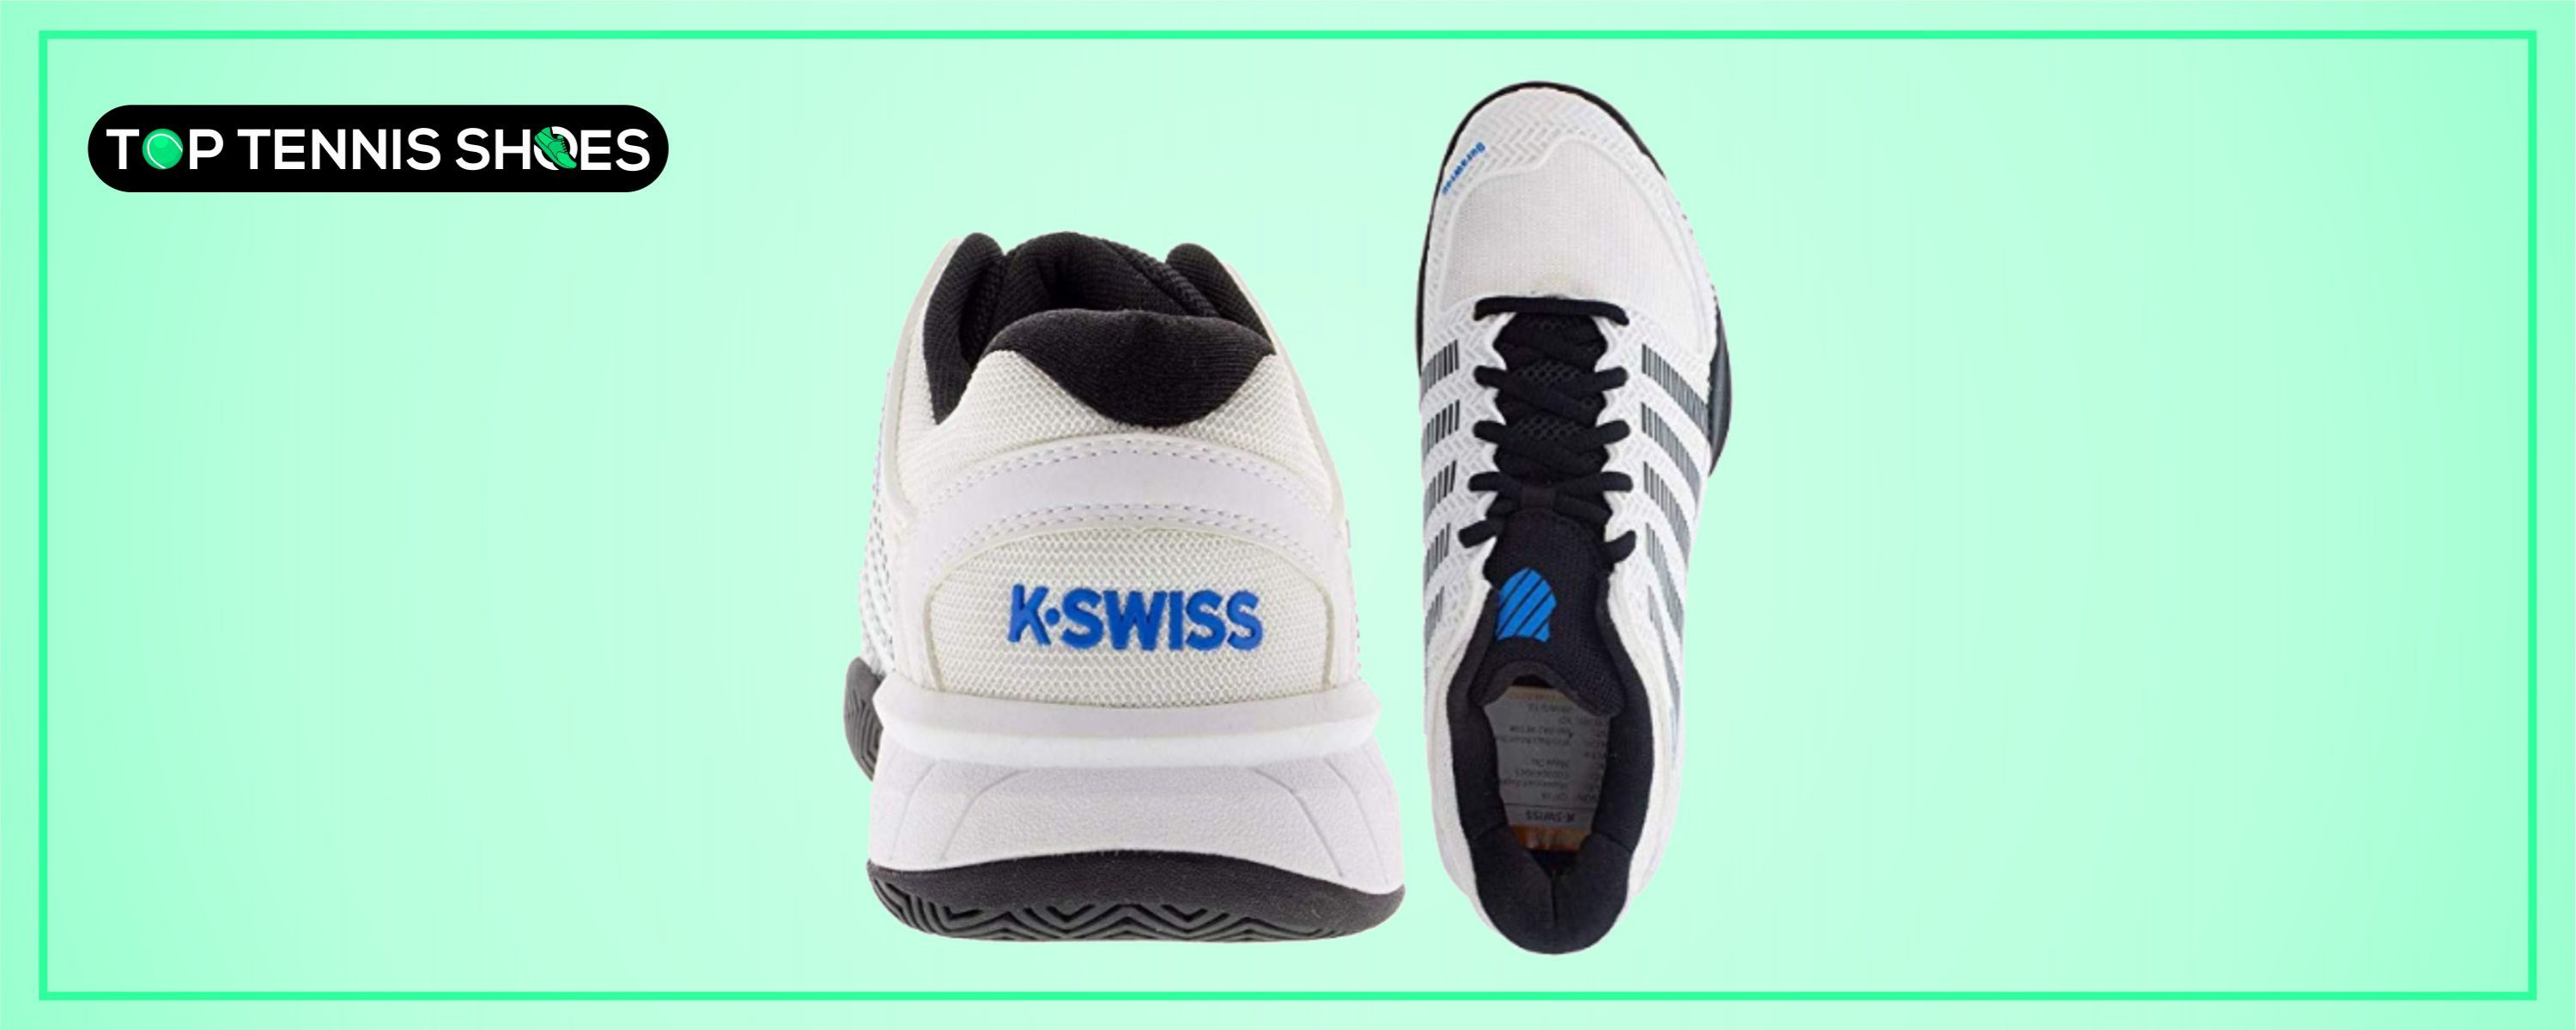 K-Swiss Tennis Sneakers